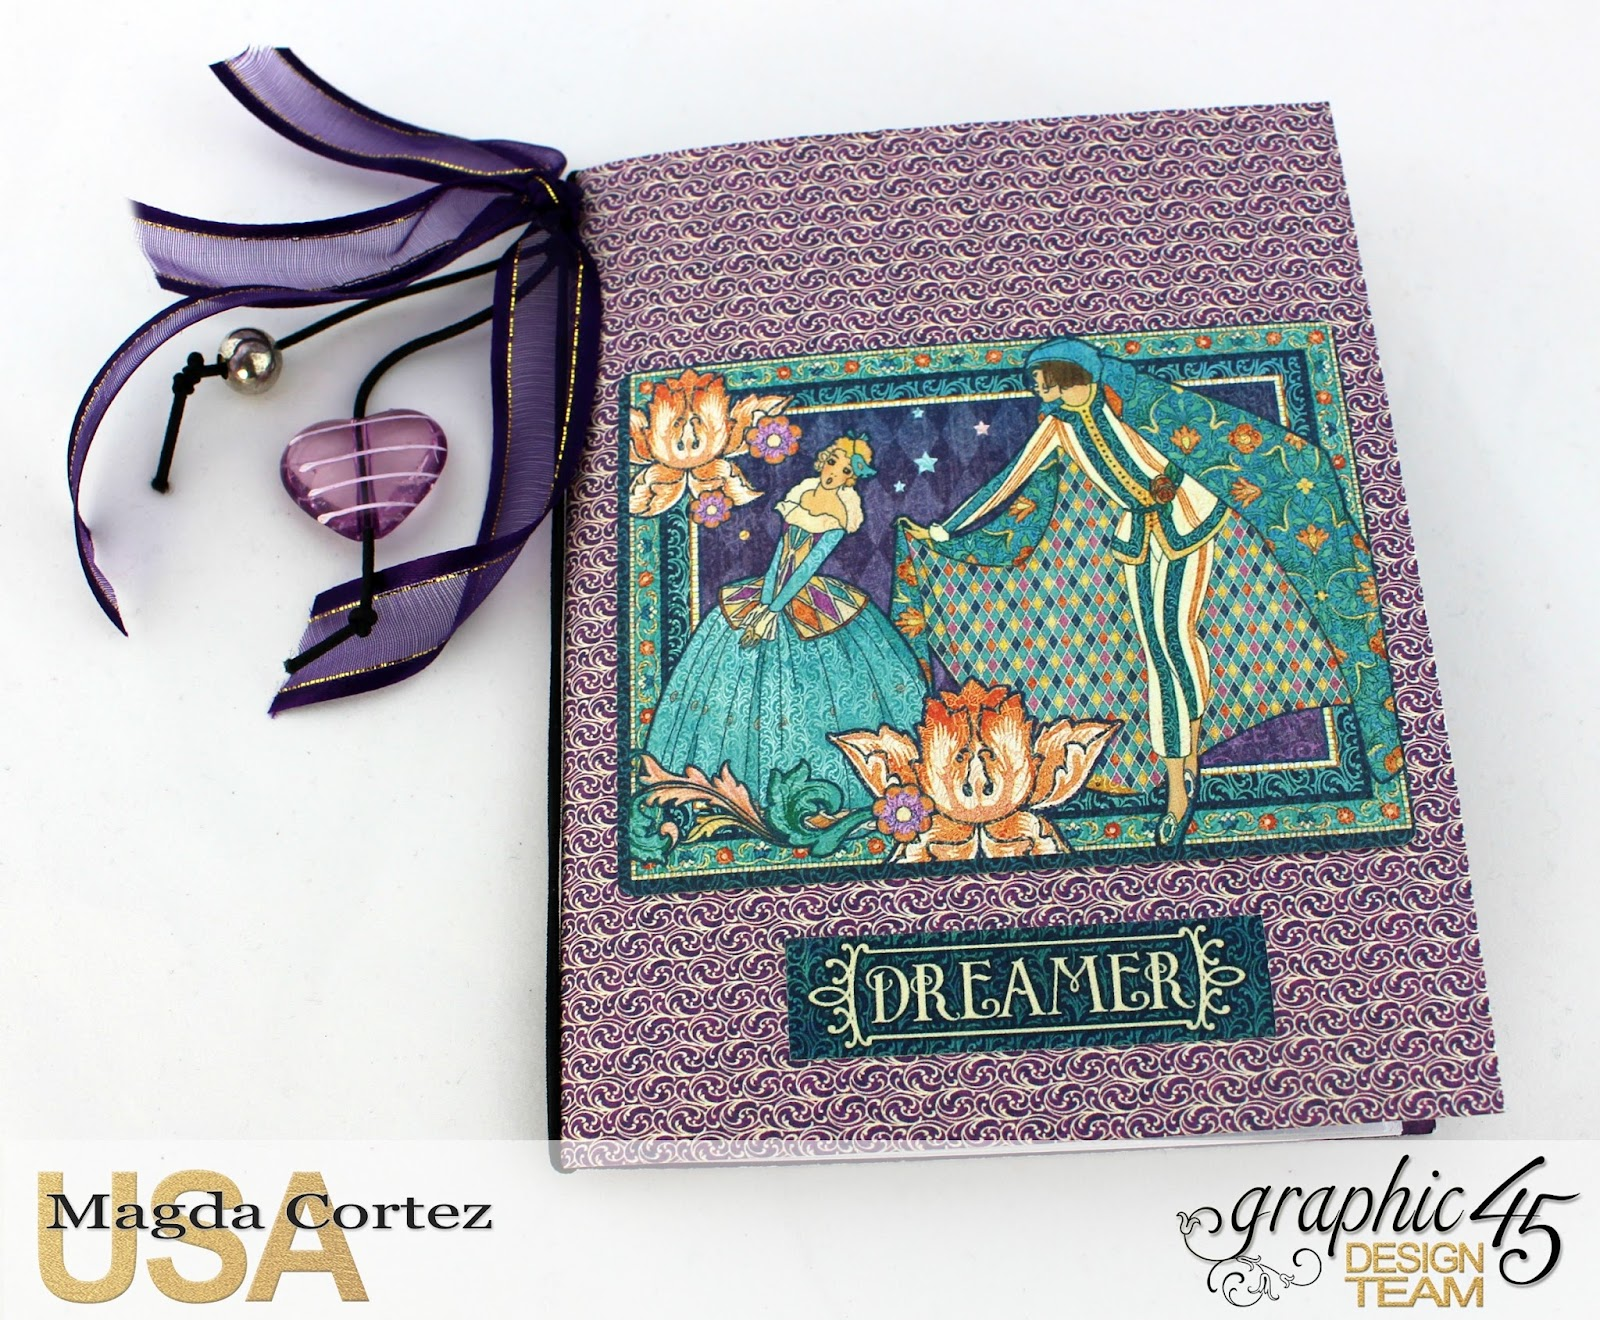 60 Second Tutorial Mini Notebooks, Midnight Masquerade, By Magda Cortez, Product by Graphic 45, Photo 03 of 07, with Tutorial.jpg